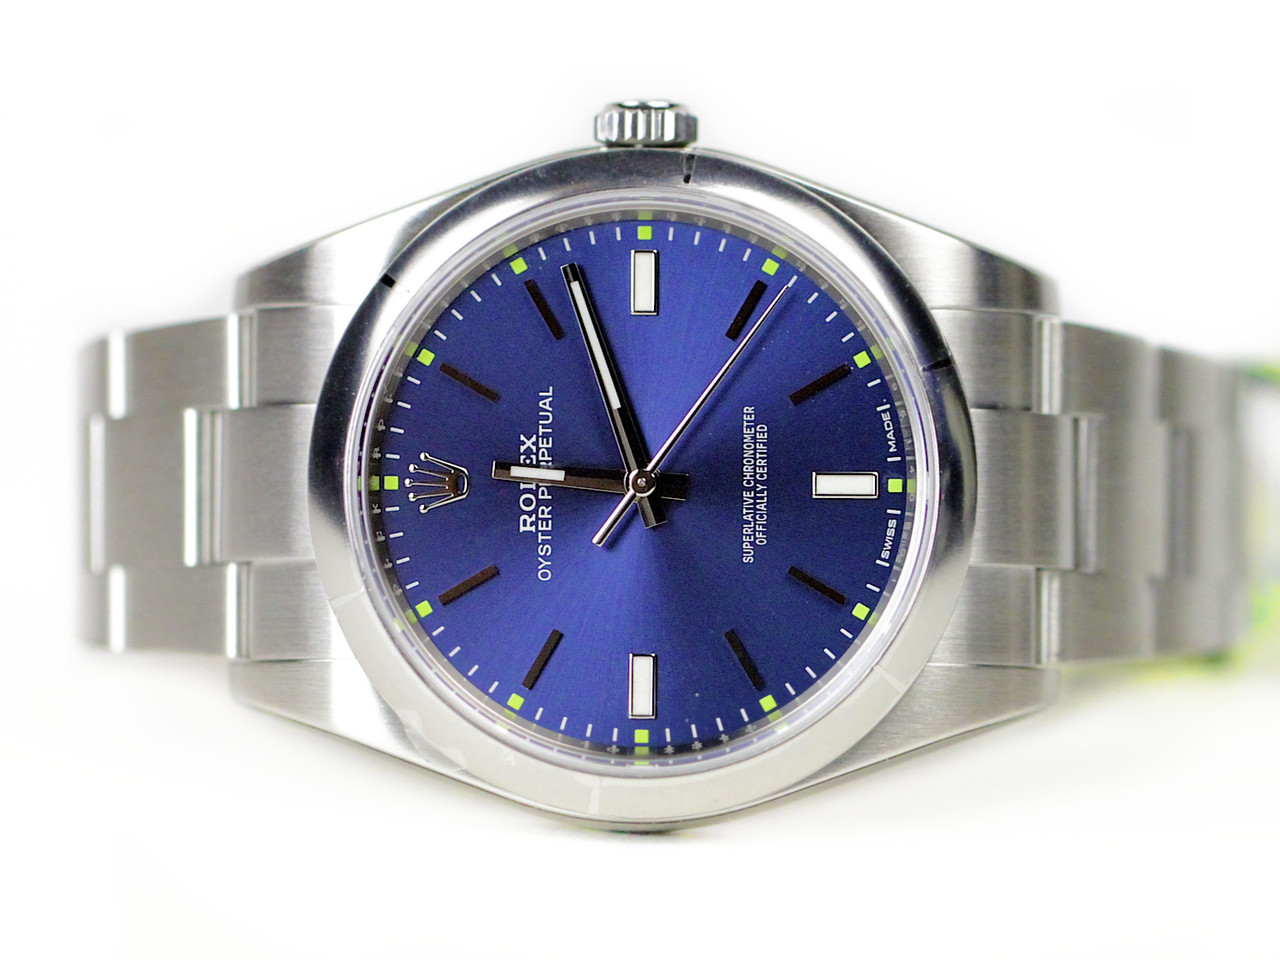 Rolex Watch - Oyster Perpetual 39 Blue 114300 - New for sale online www.Legendoftime.com and in store Legend of Time - Chicago Watch Center